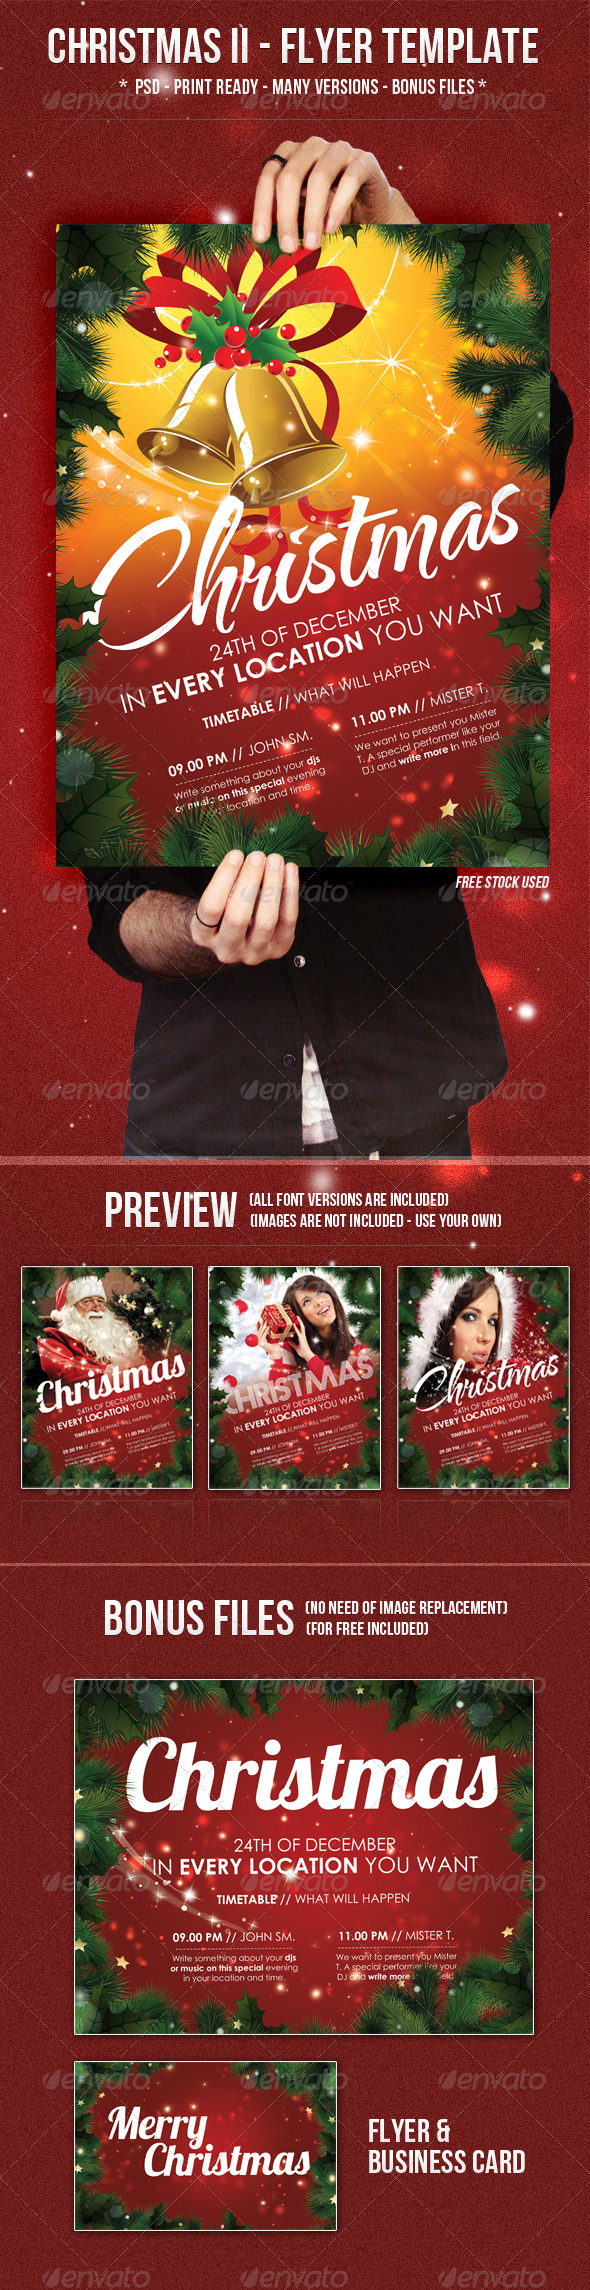 GraphicRiver Christmas II Flyer Template 726359